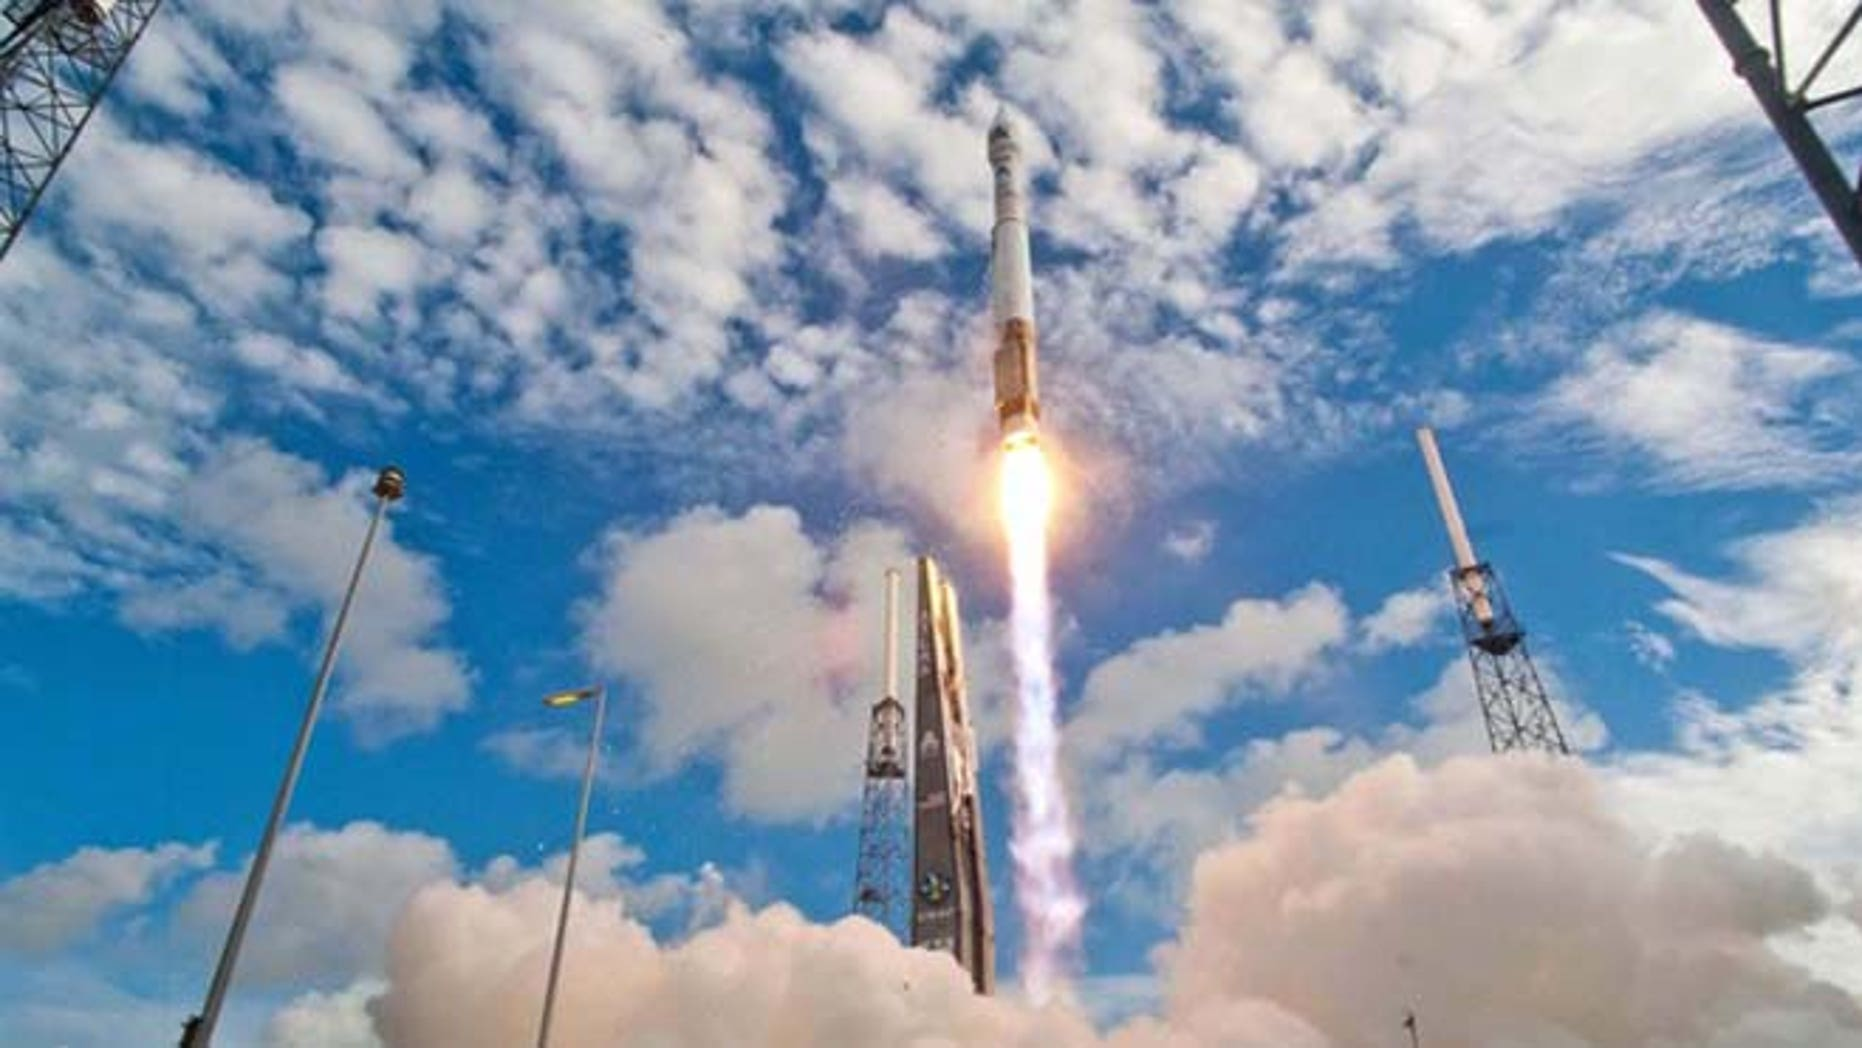 A United Launch Alliance Atlas 5 rocket launches the classified NROL-38 spy satellite into orbit from Space Launch Complex-41 at the Cape Canaveral Air Force Station in Florida on June 20, 2012.